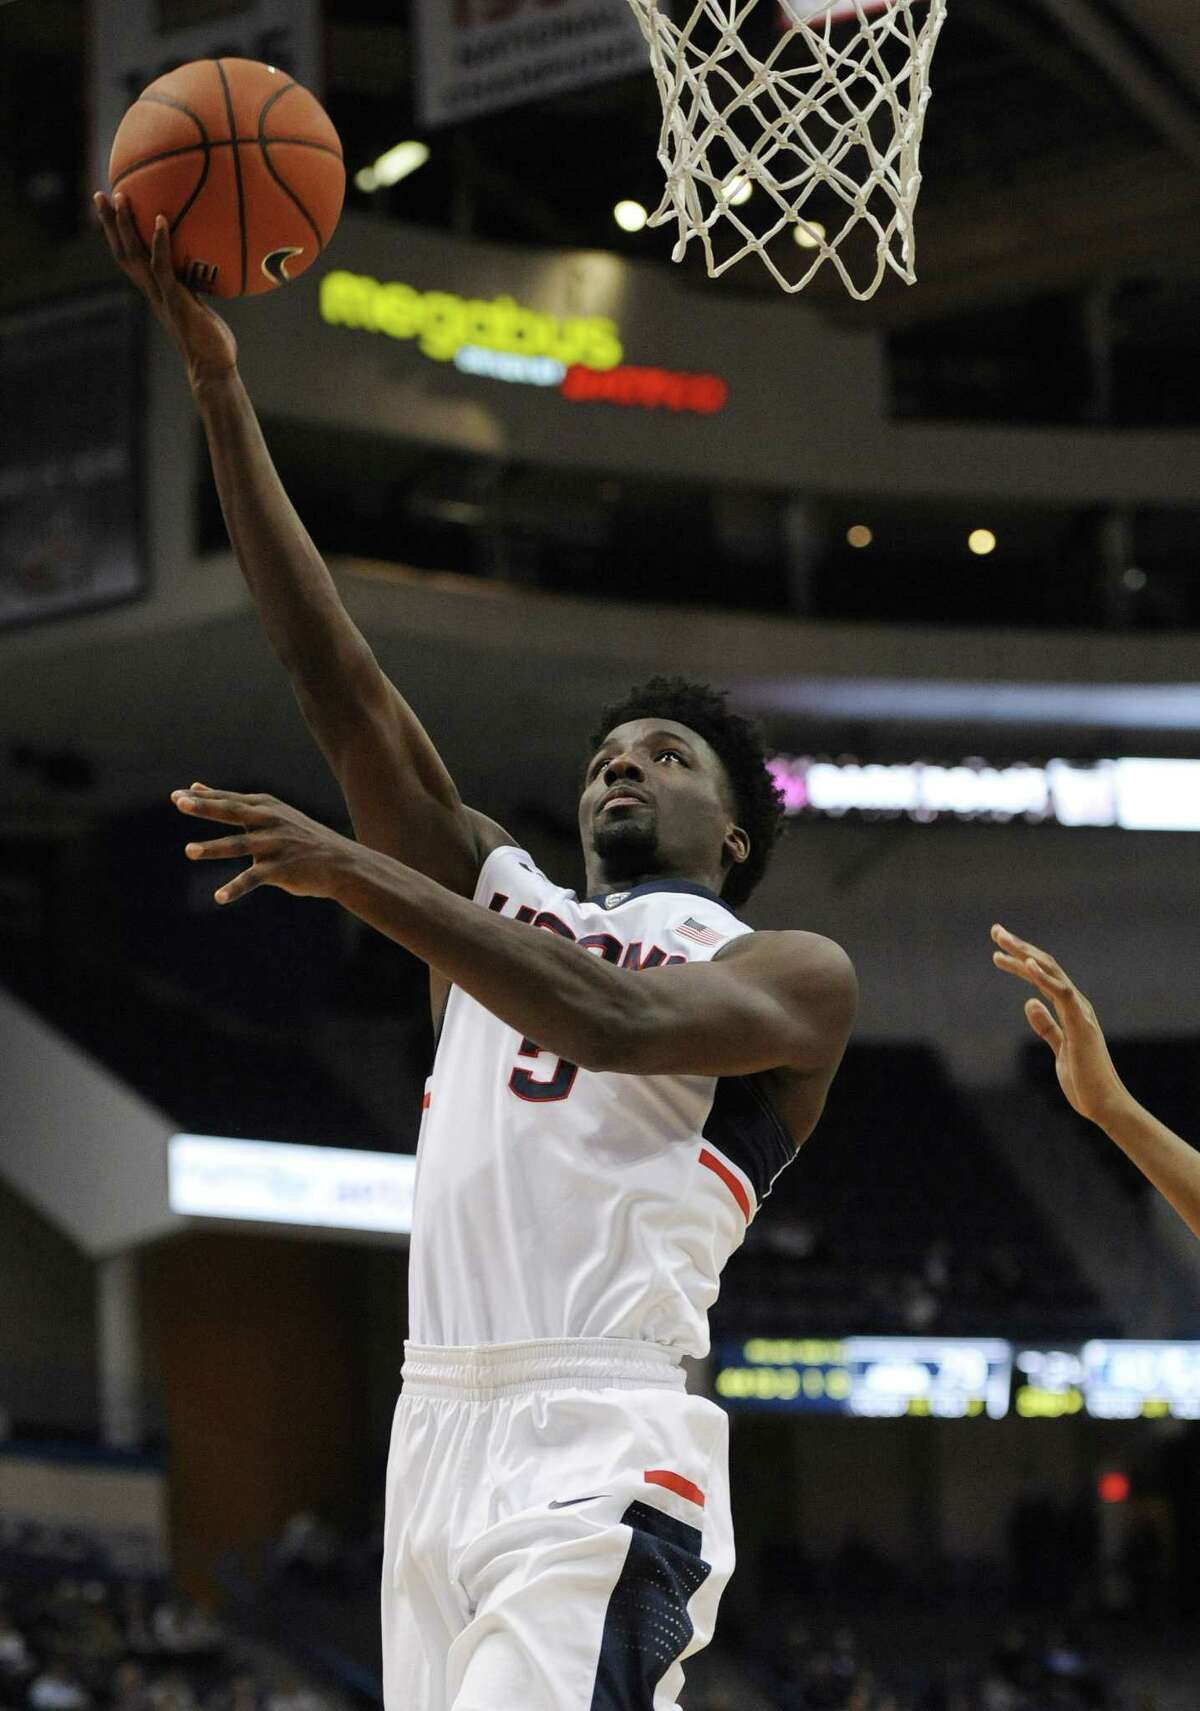 Connecticut's Daniel Hamilton goes up for a basket in the second half of an NCAA college basketball game against Central Connecticut State, Wednesday, Dec. 23, 2015, in Hartford, Conn. UConn won 99-52. (AP Photo/Jessica Hill)